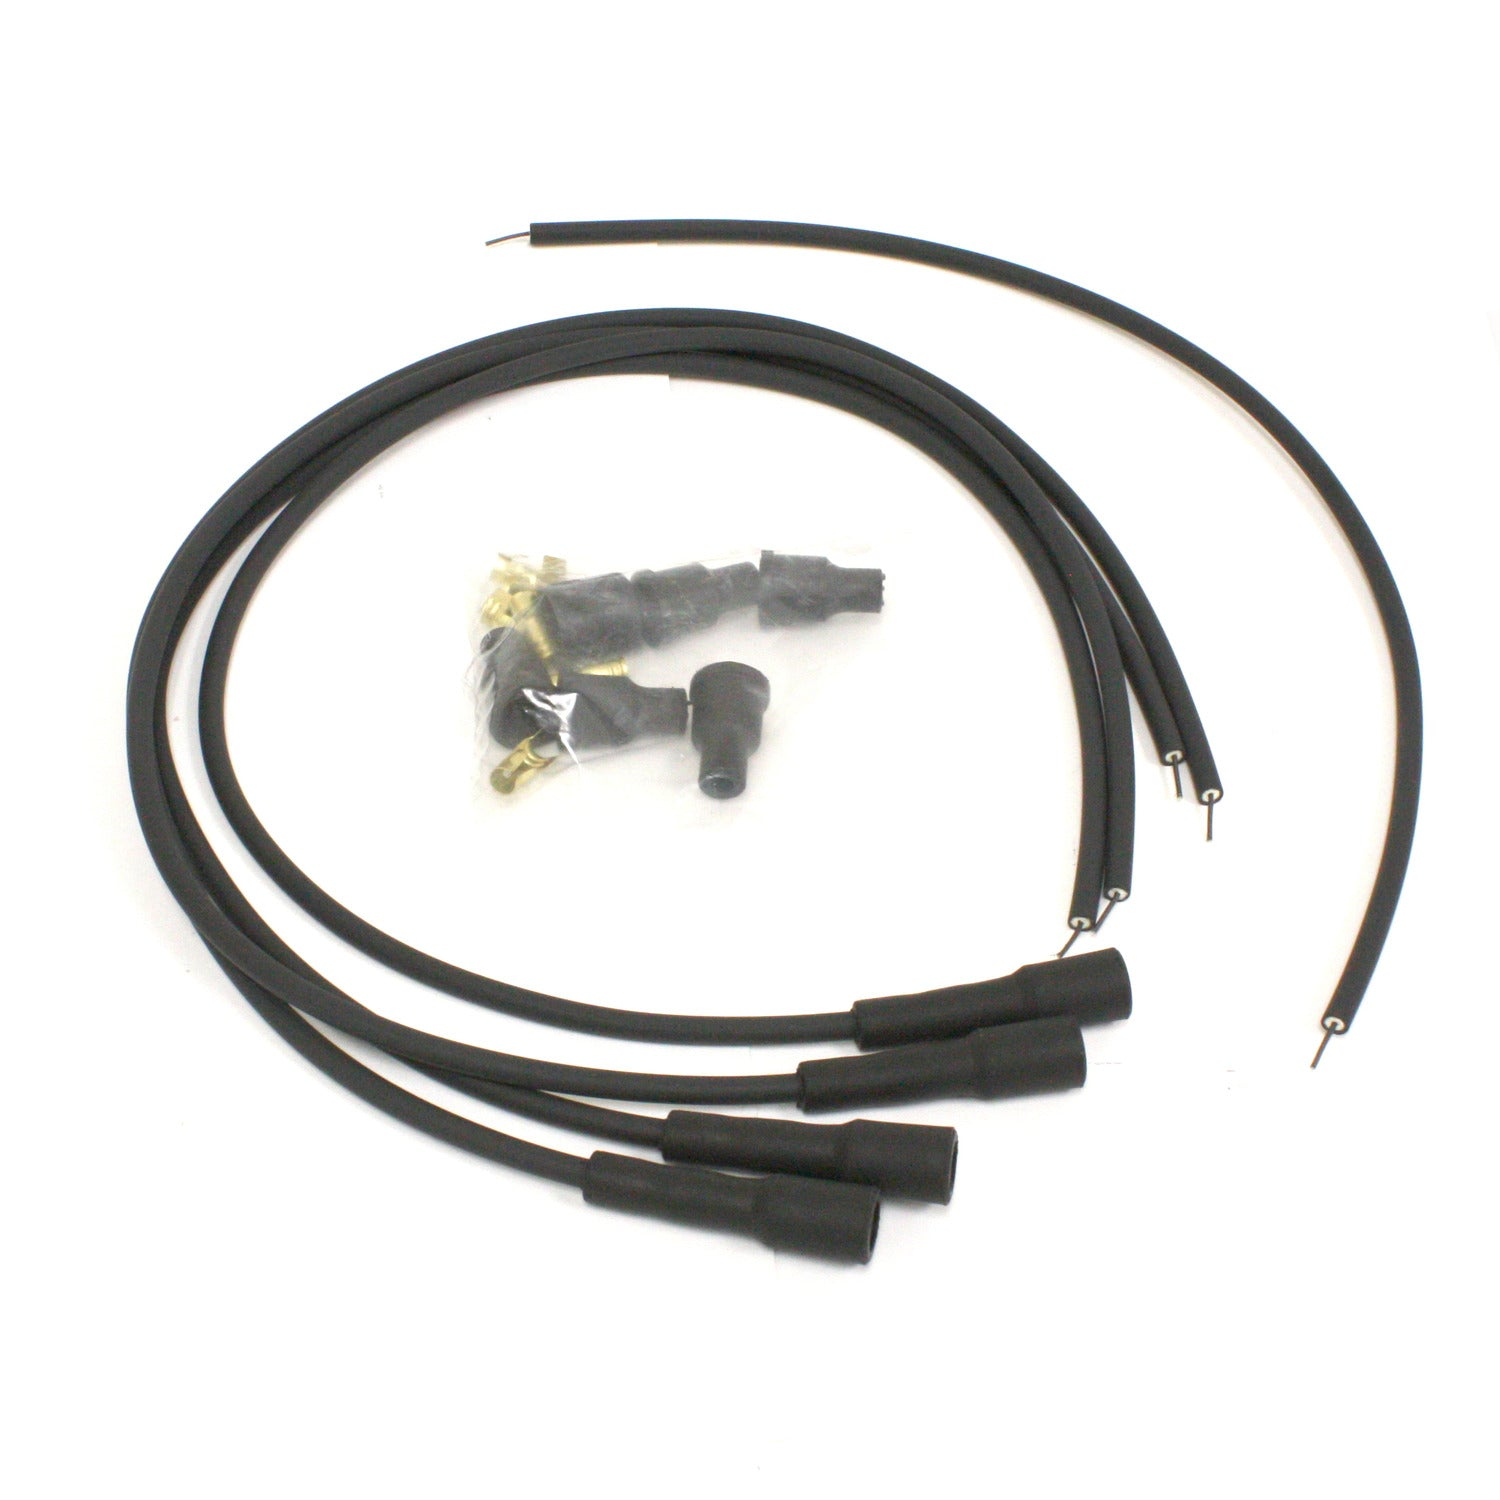 PerTronix 704180 Flame-Thrower Spark Plug Wires 4 cyl British Universal 180 Degree Black